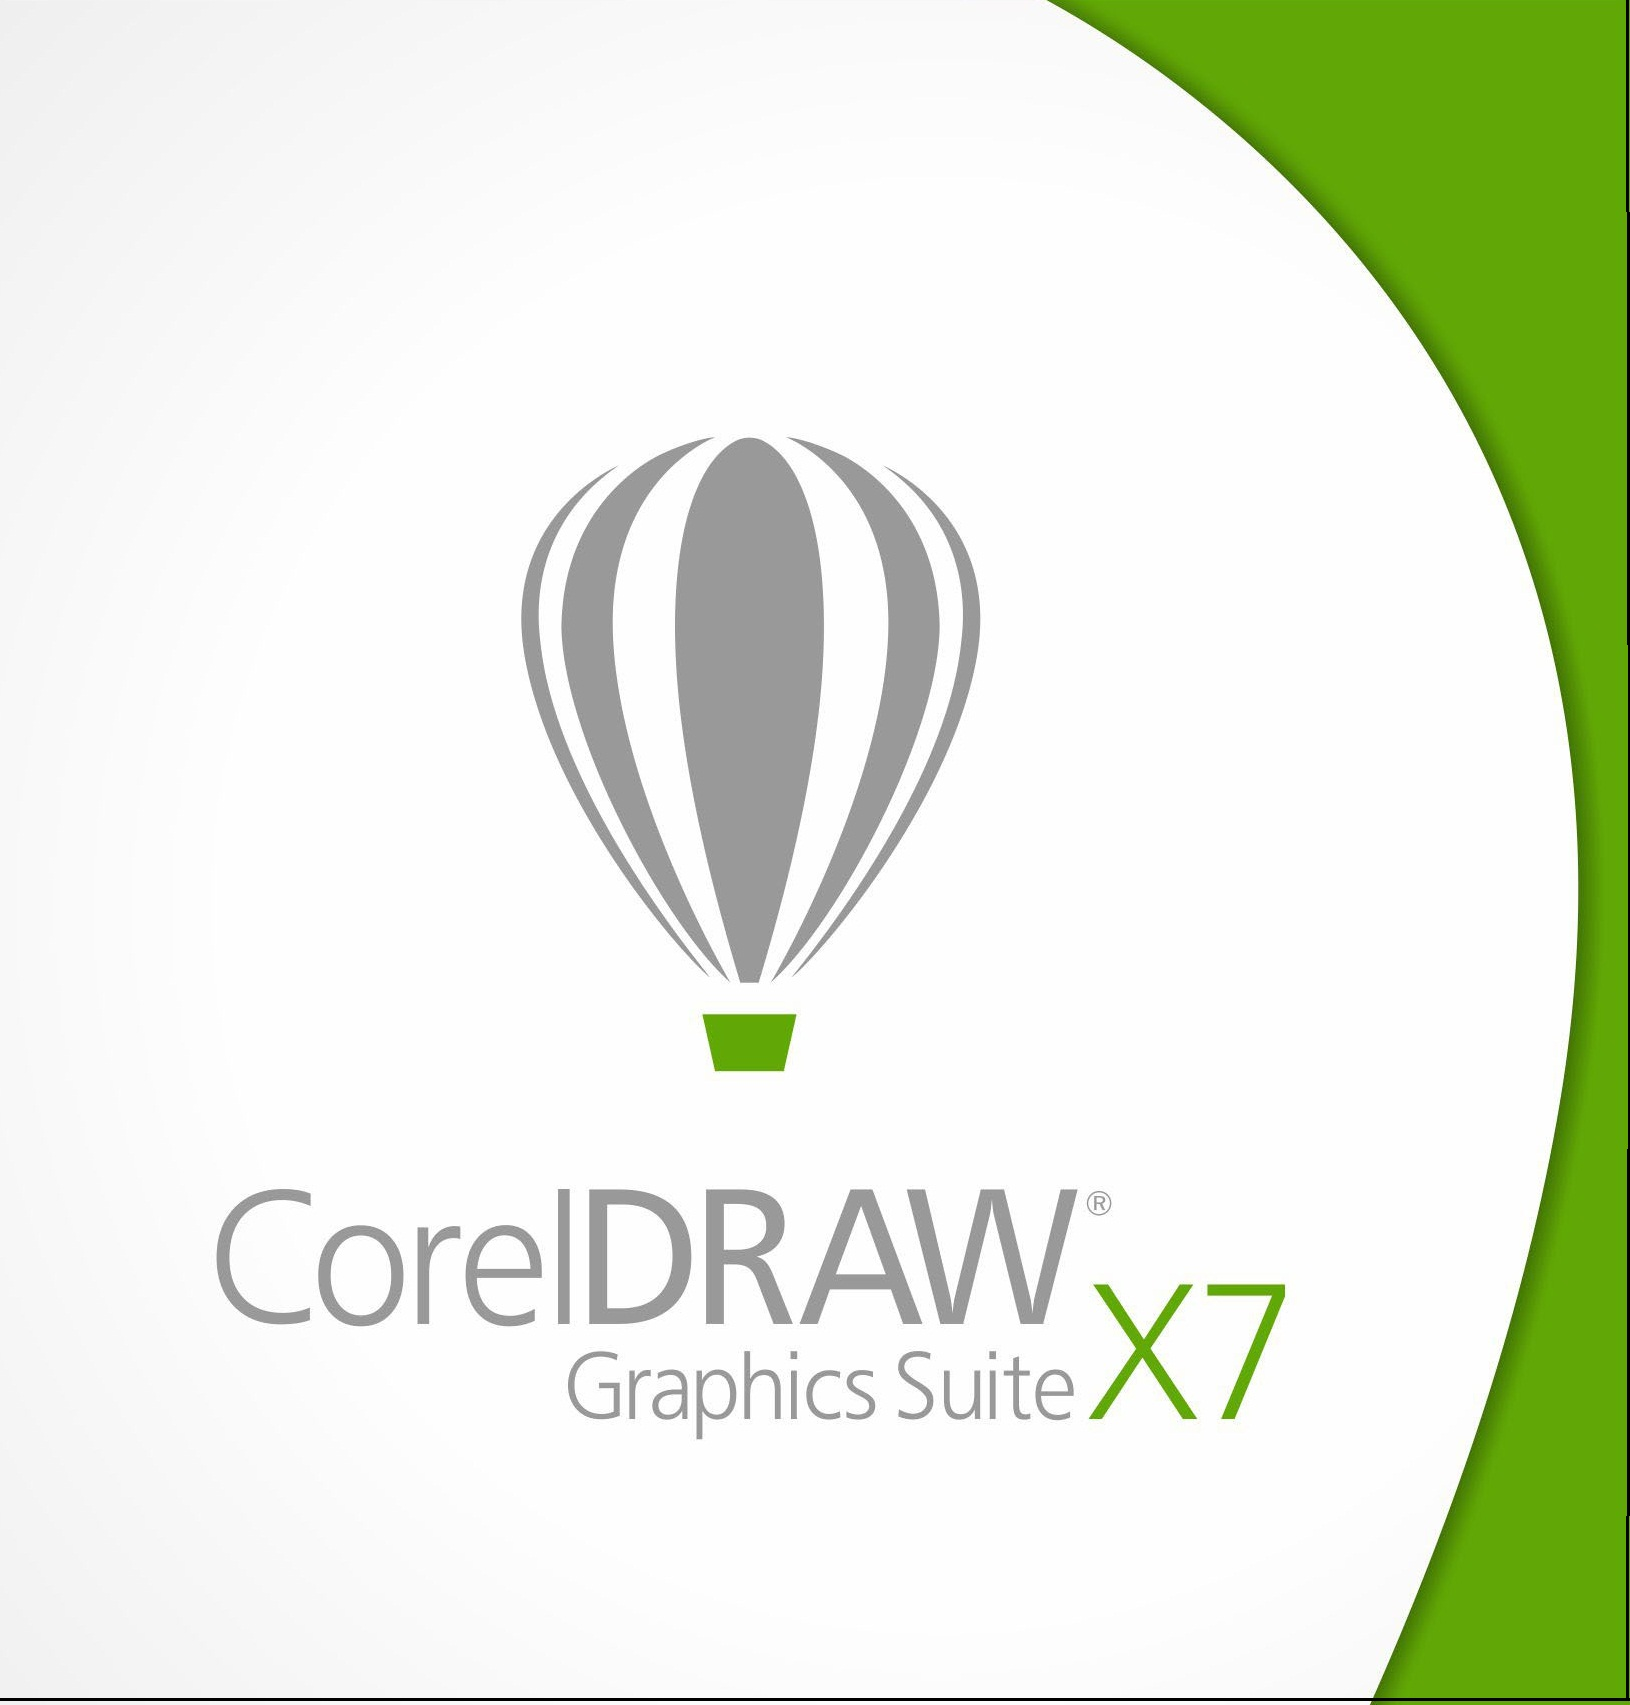 Corel draw version - Coreldraw Graphics Suite X7 Logo